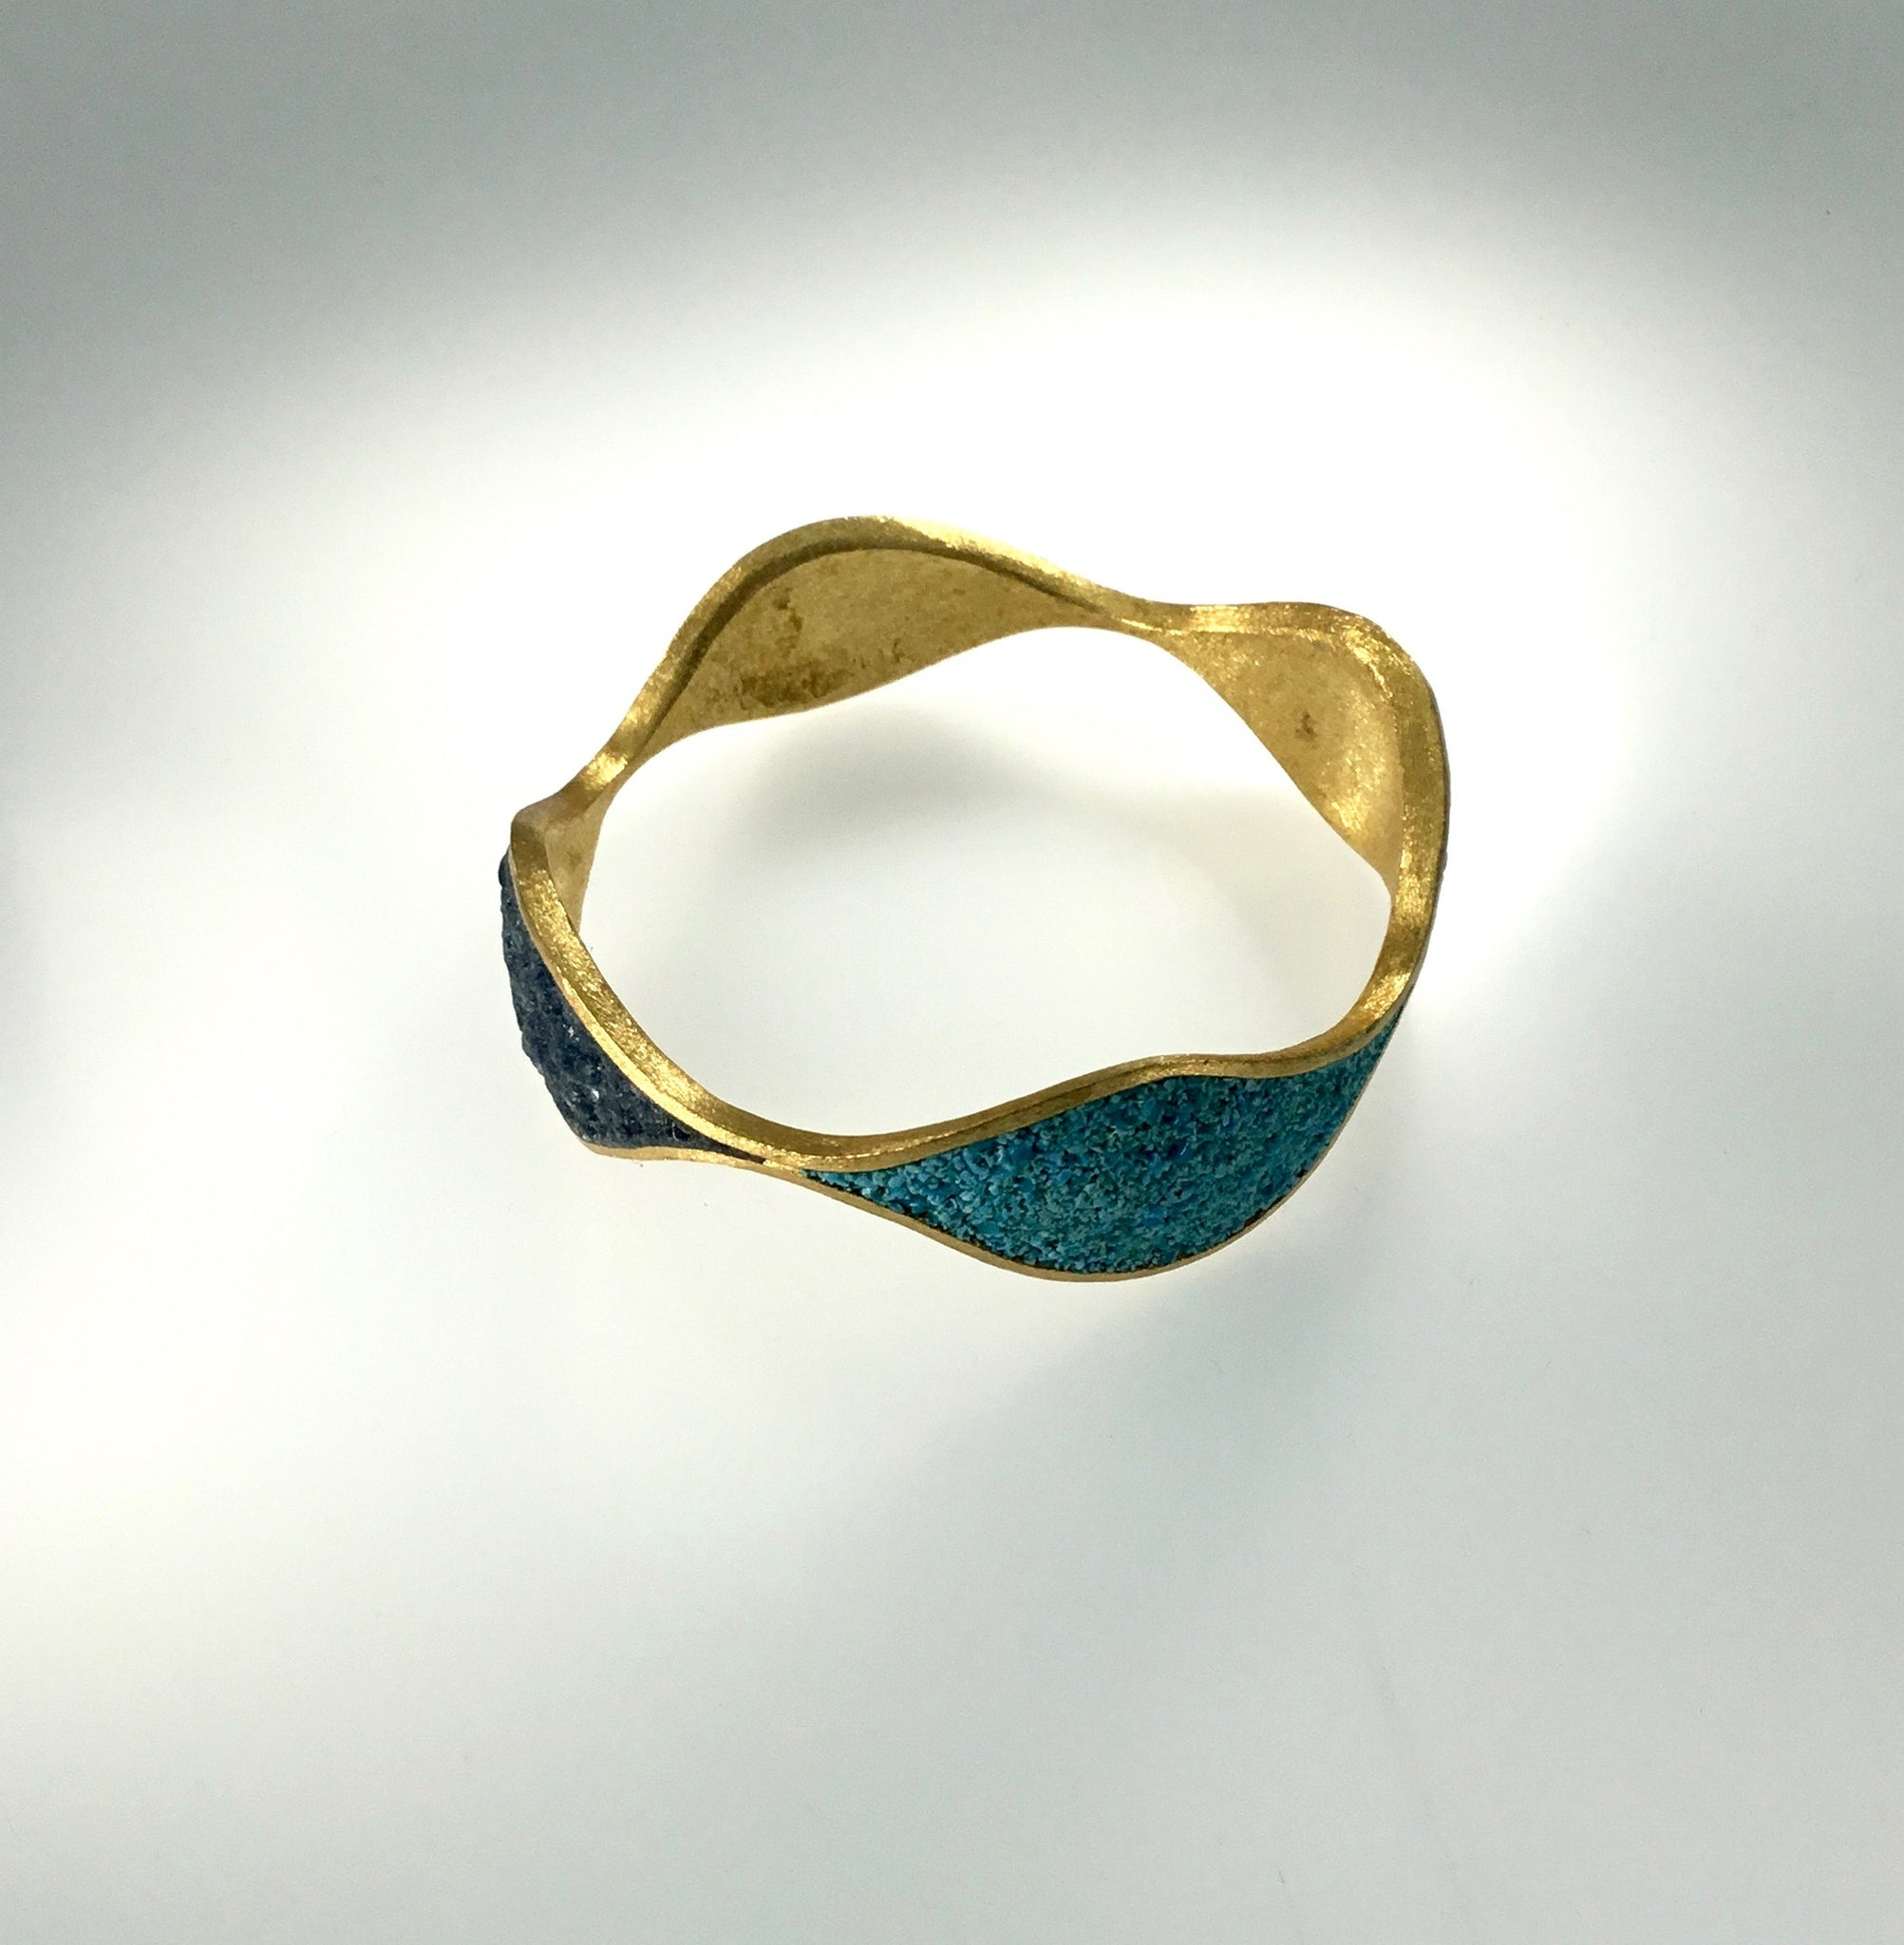 David Urso Bronze Quatro Bangle